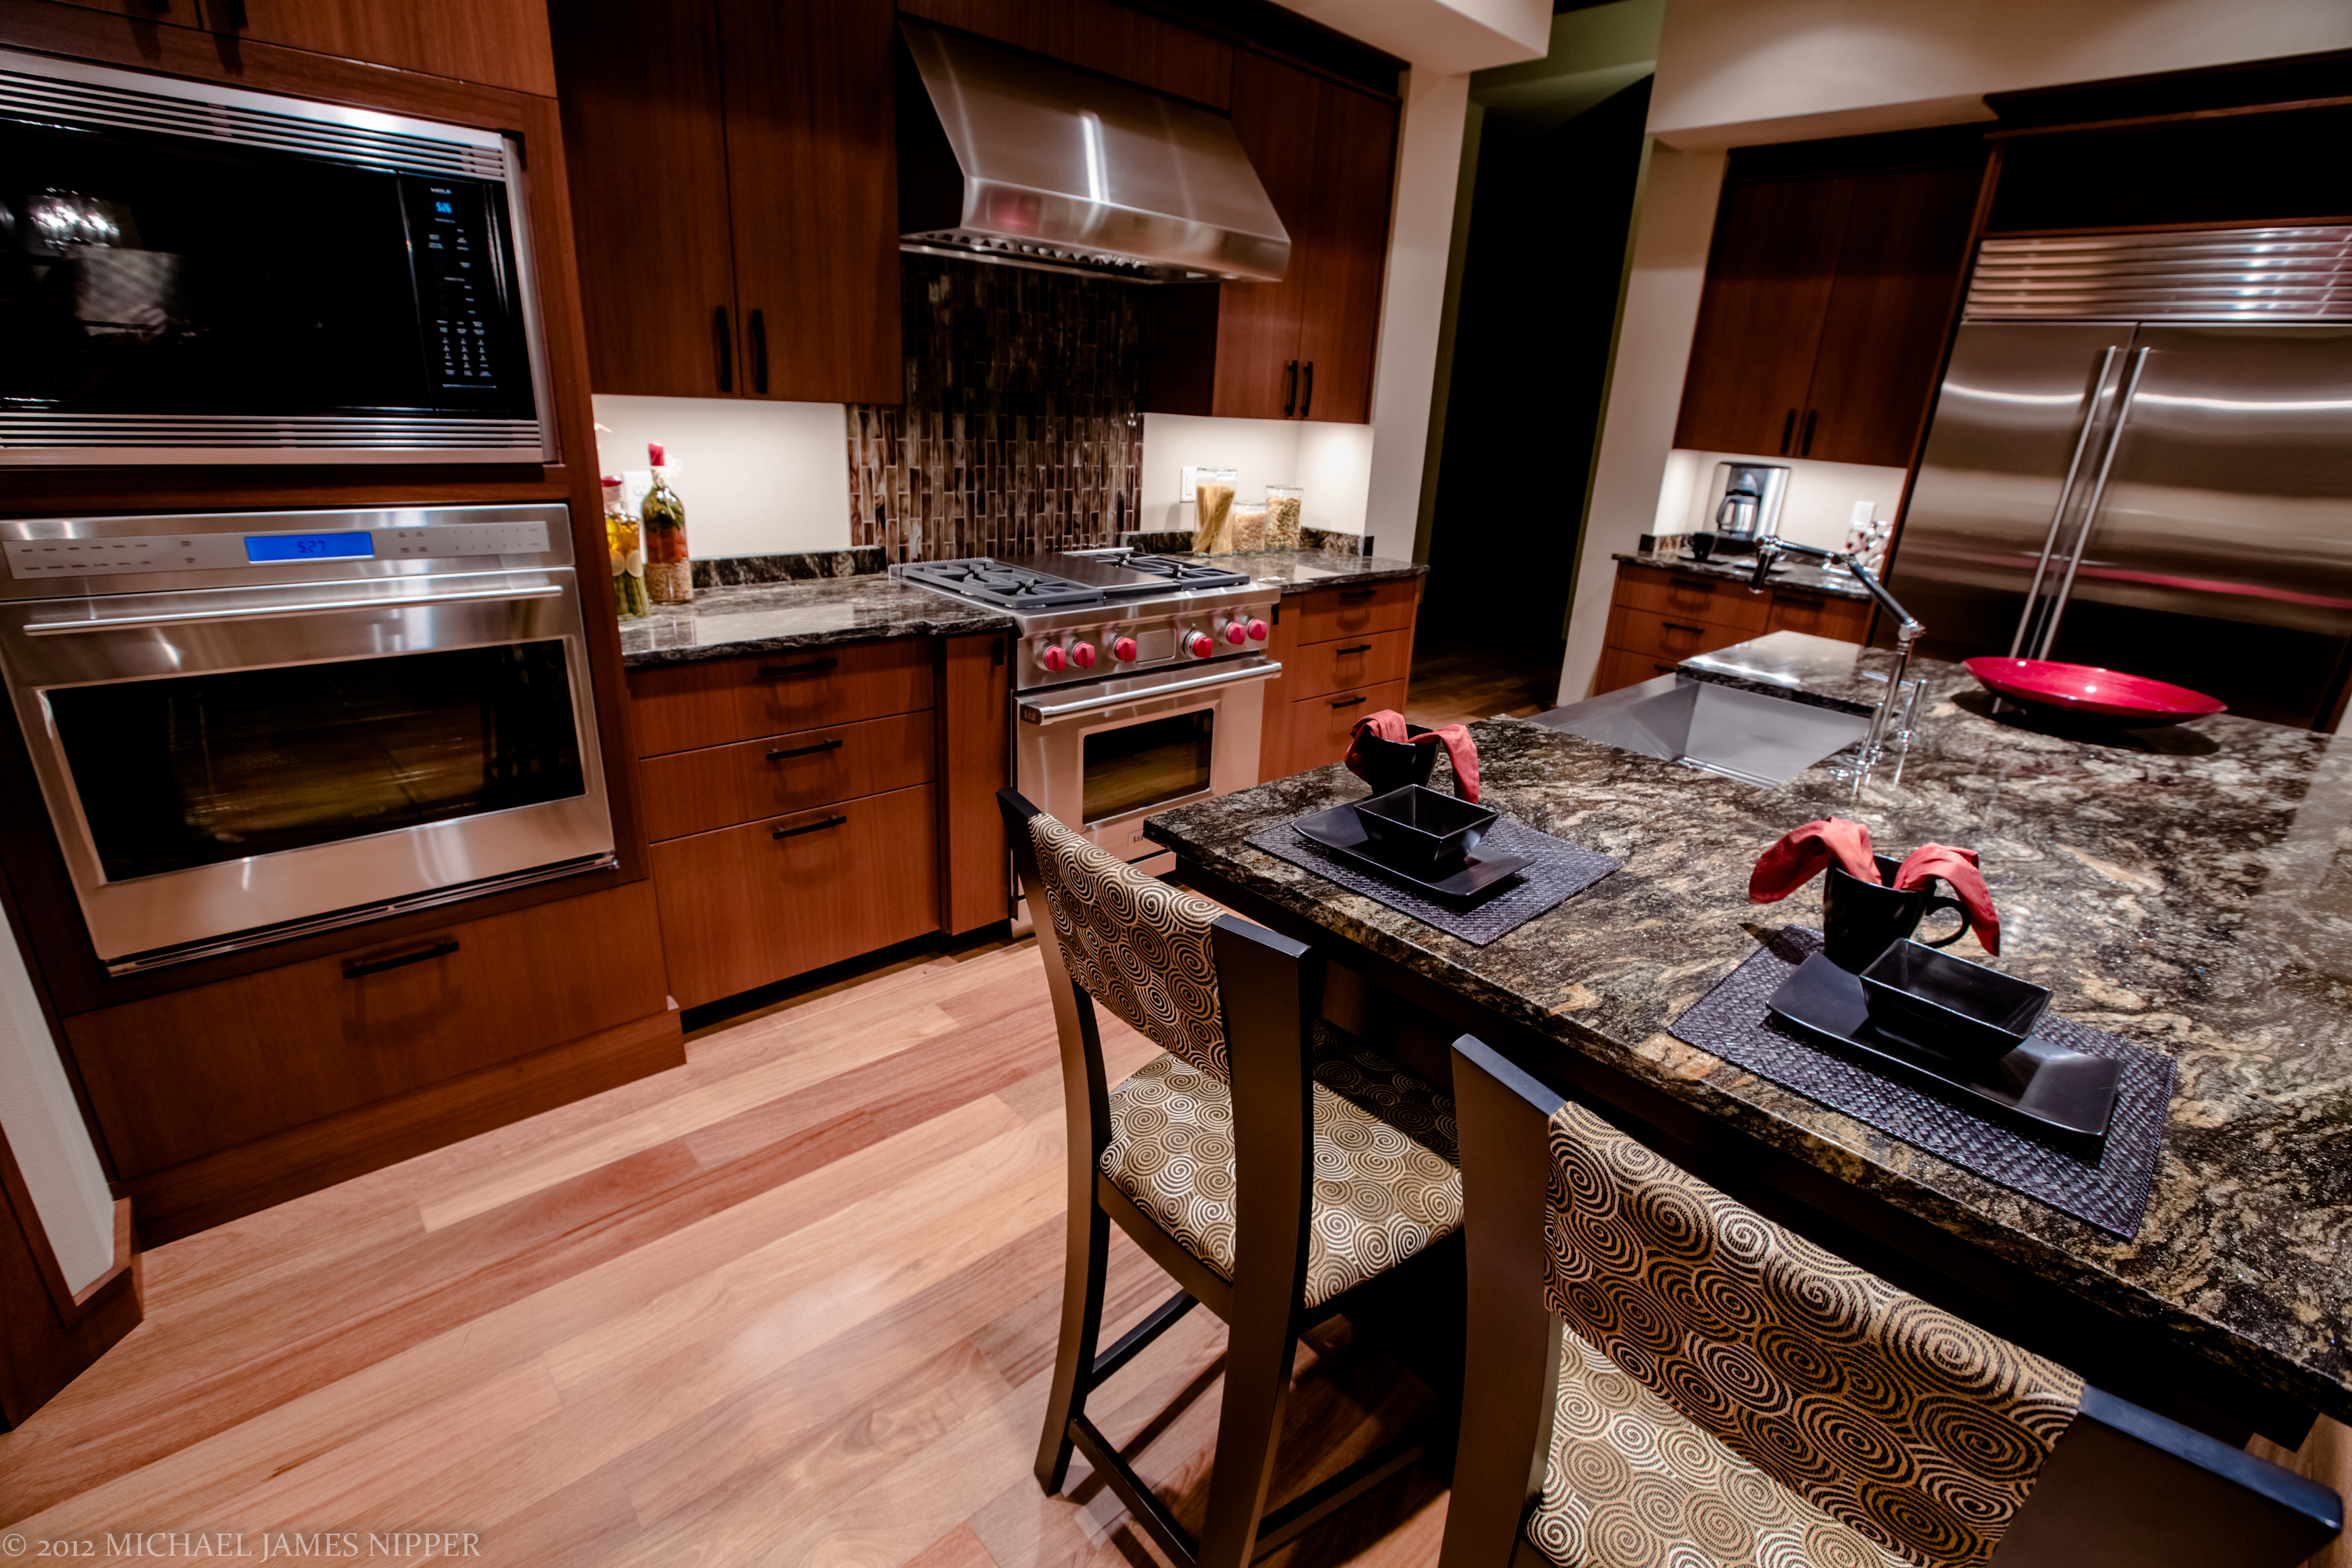 Kitchen and dining area of 2013 Street of Dreams Custom Home 20-20 by Rick Bernard of Bernard Custom Homes.